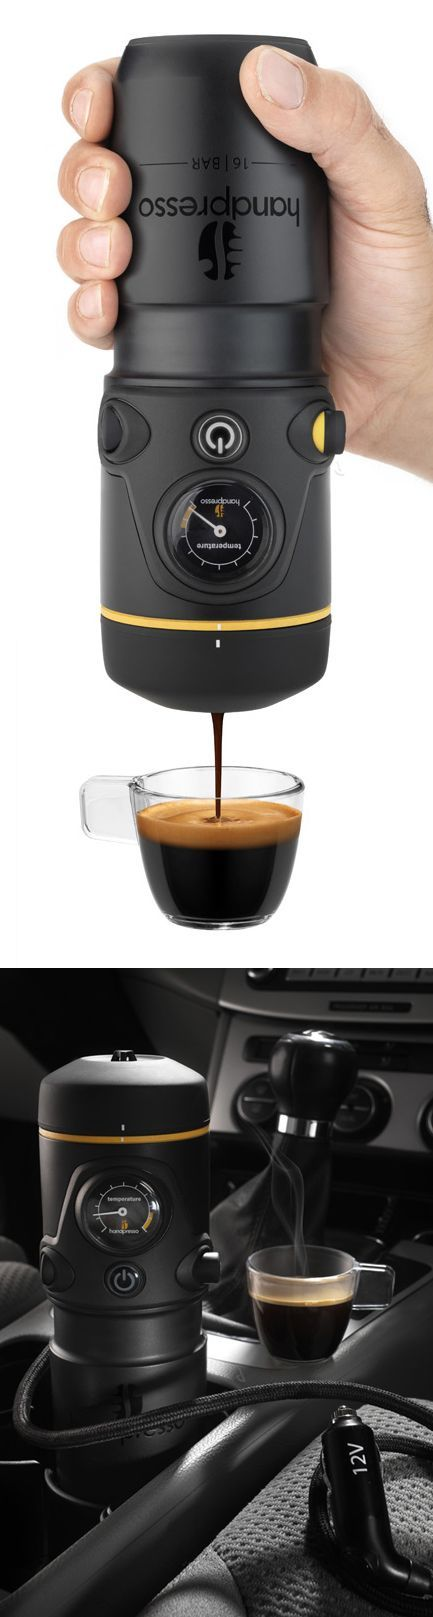 Portable Coffee Maker // simply plug the Handpresso into your car and have fresh brewed espresso on the go within minutes! Genius design! #product_design